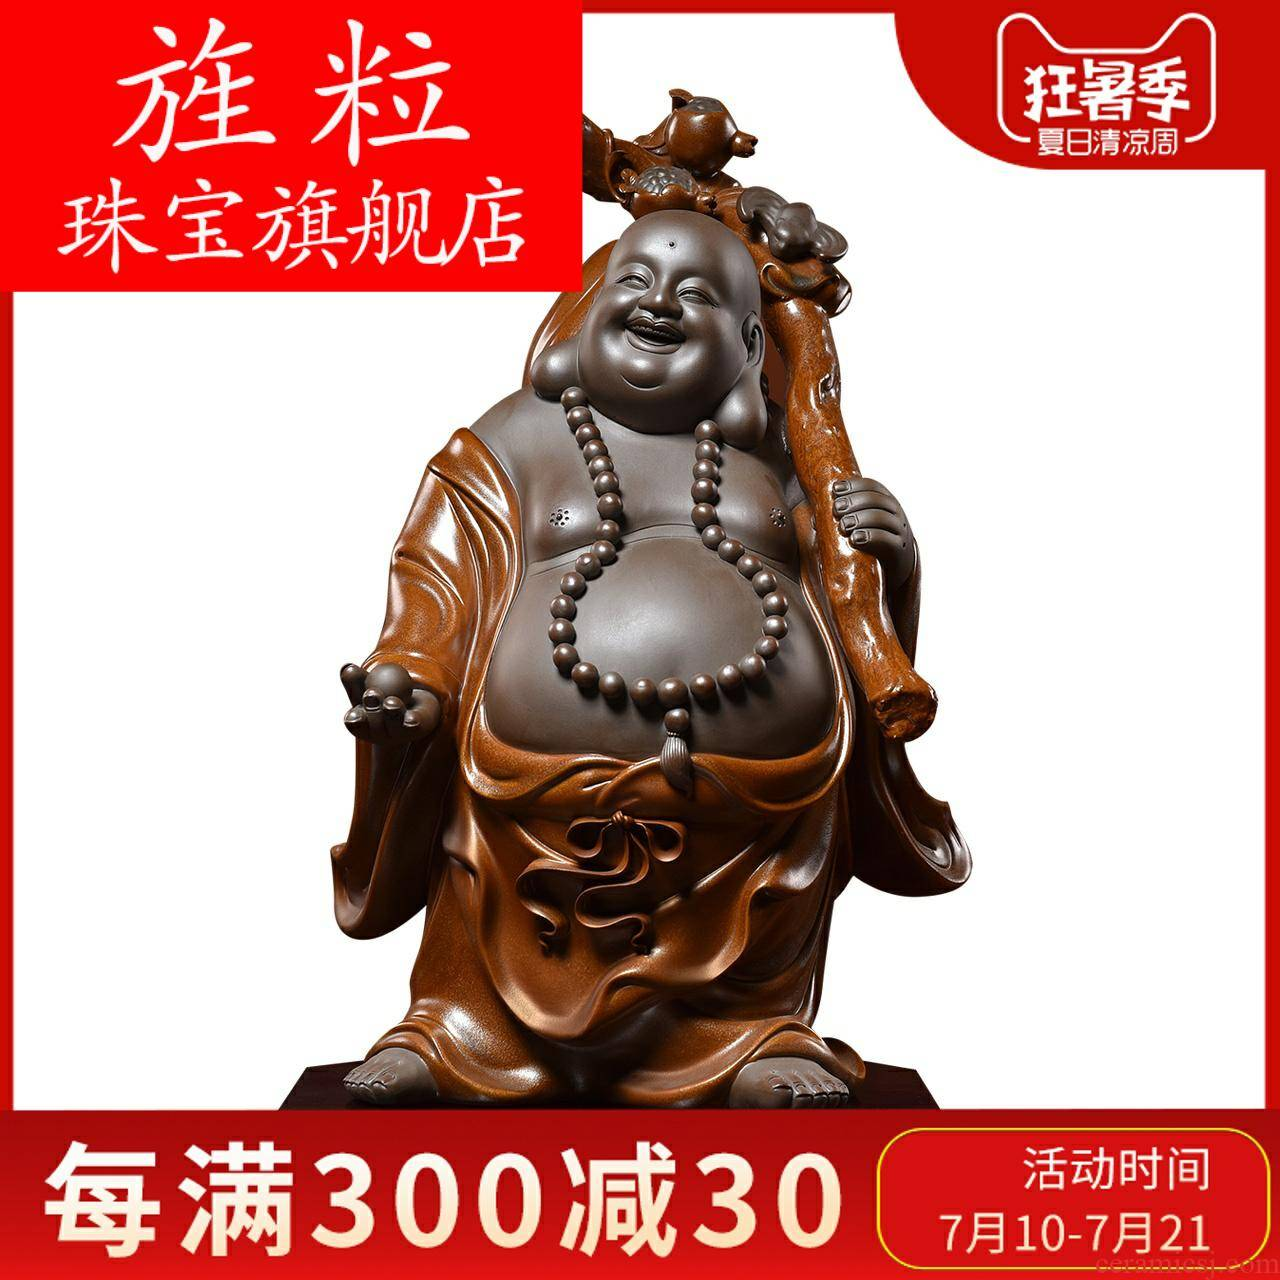 Bm ceramic smiling Buddha maitreya Buddha furnishing articles of Chinese style household housewarming gift many children the H10-27